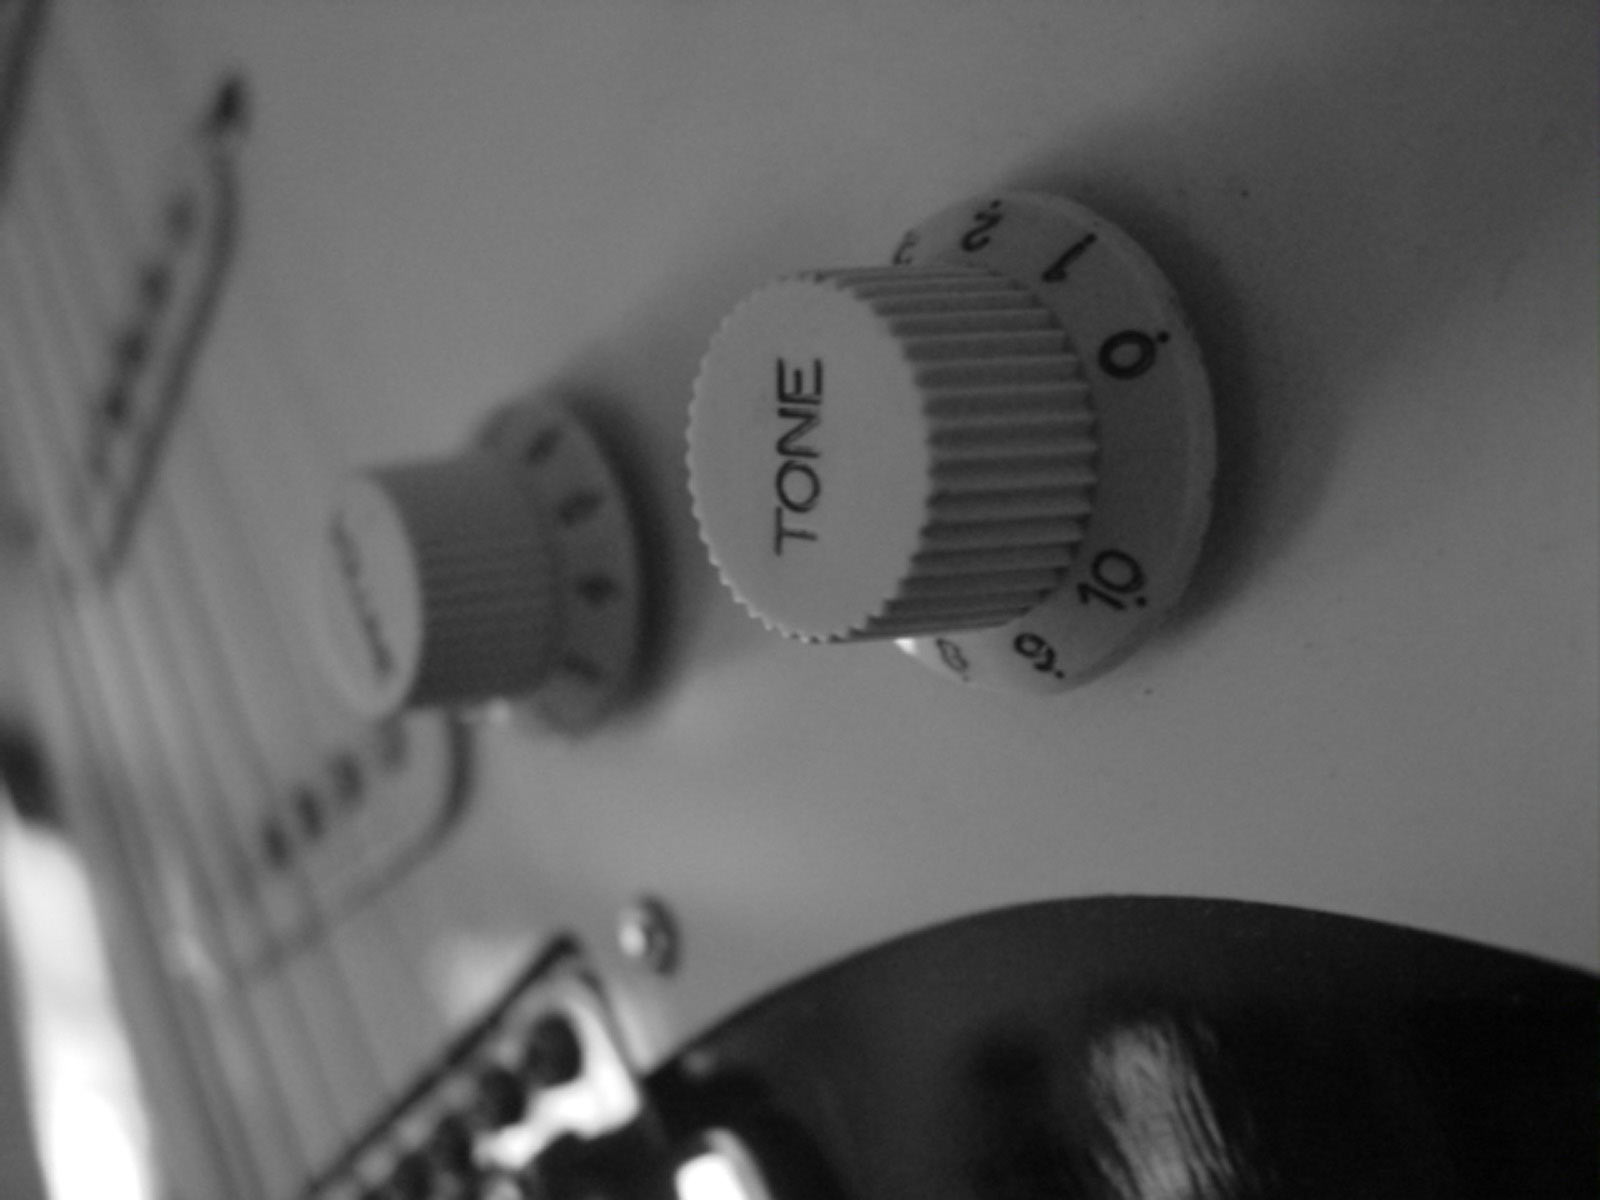 Electric guitar closeup, Blackandwhite, Closeup, Electric, Guitar, HQ Photo